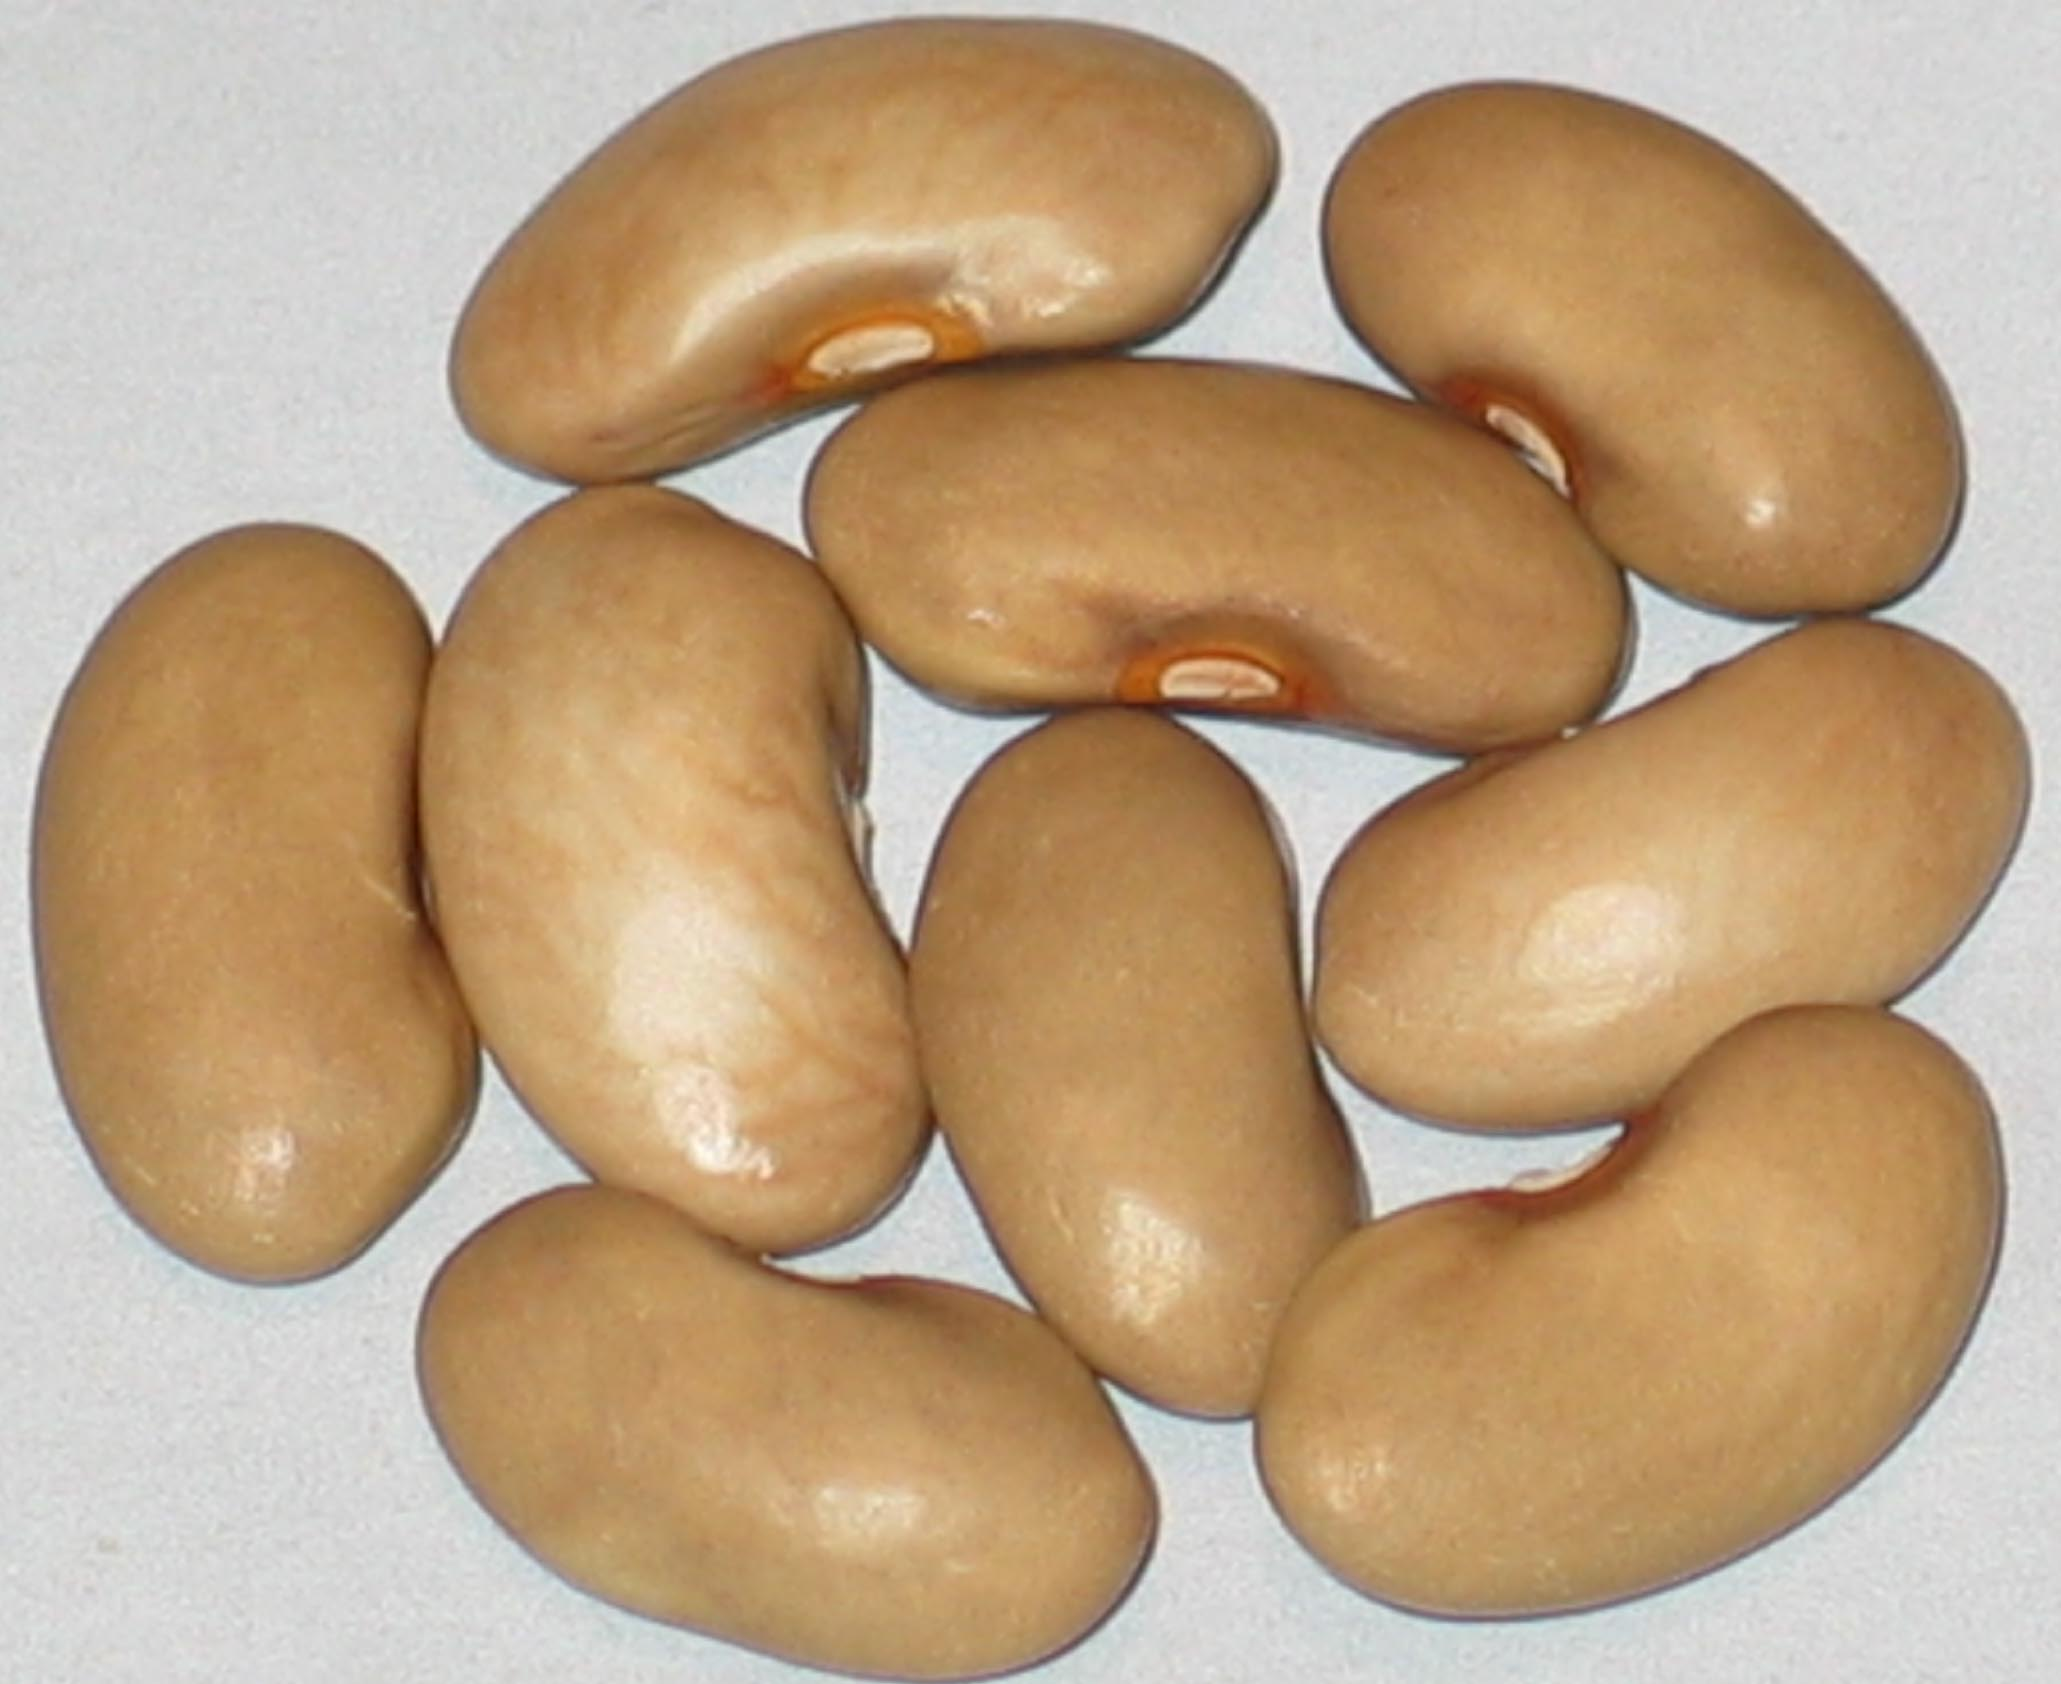 image of Johnsburg beans